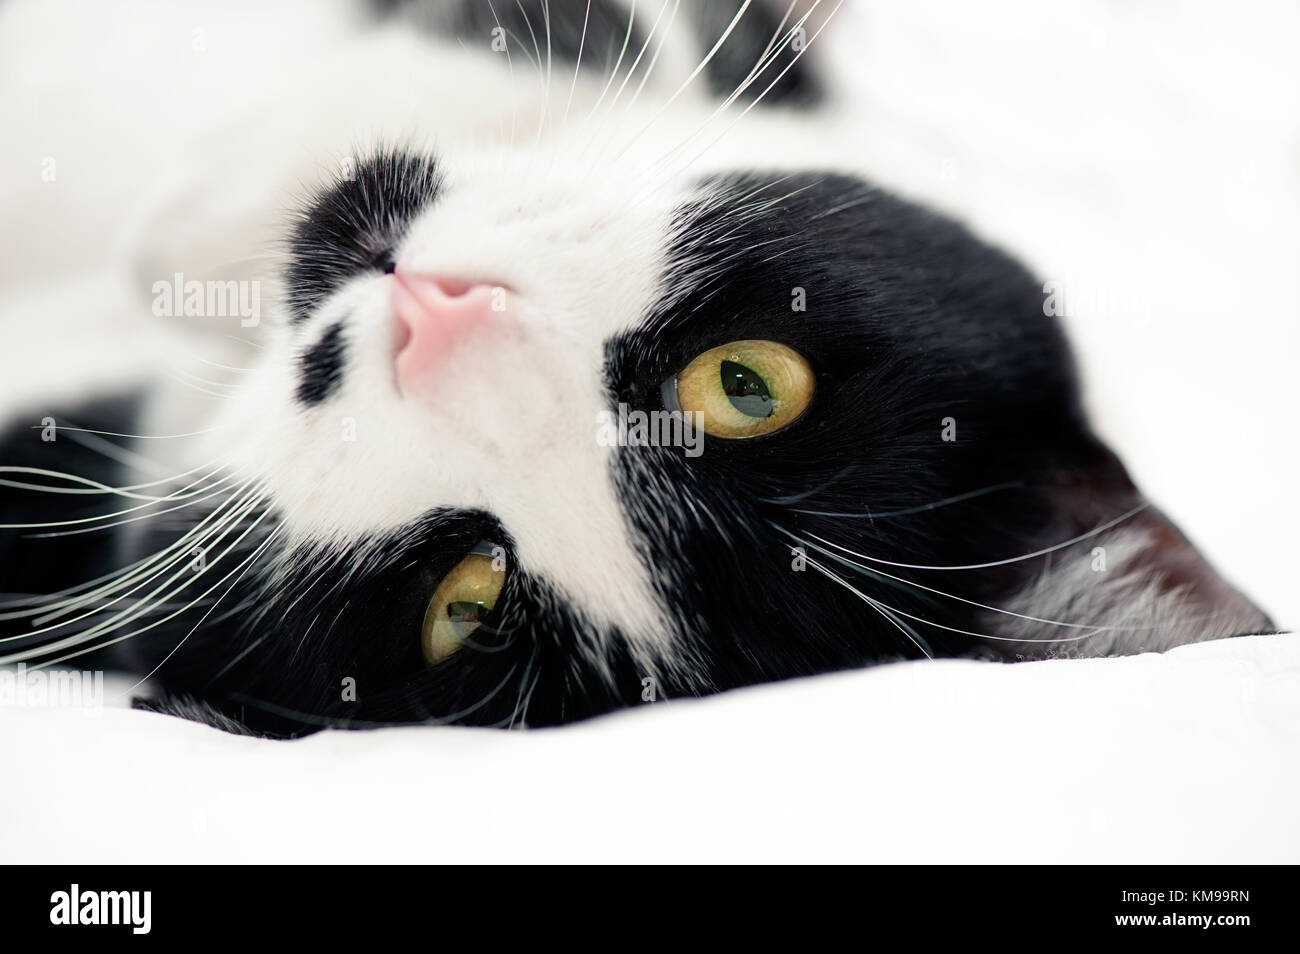 Portrait of tuxedo cat - Stock Image